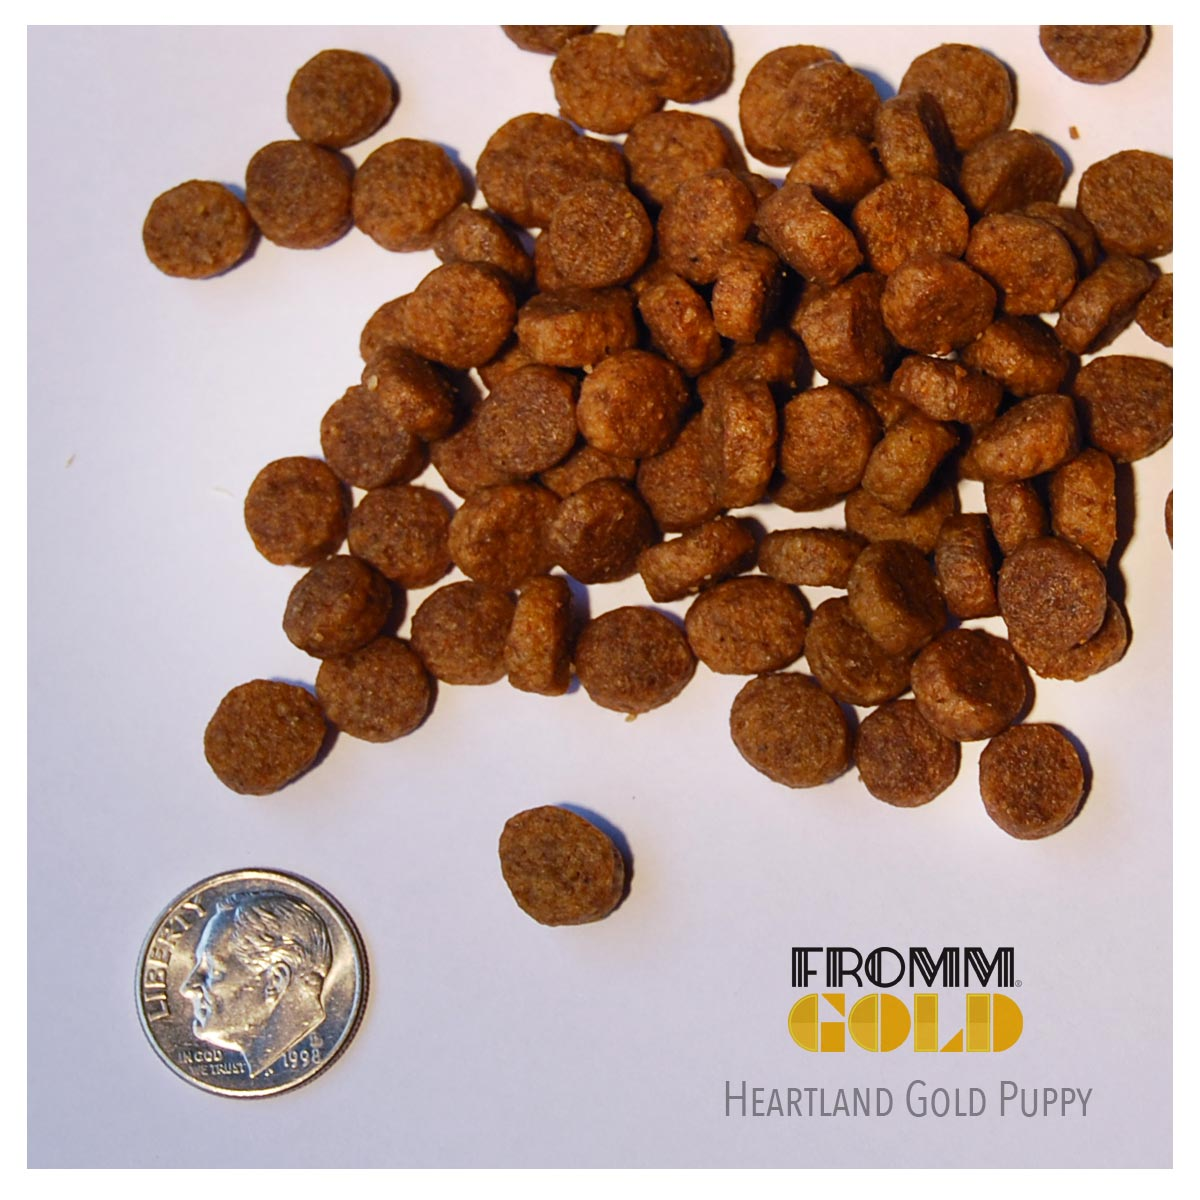 fromm heartland gold puppy review